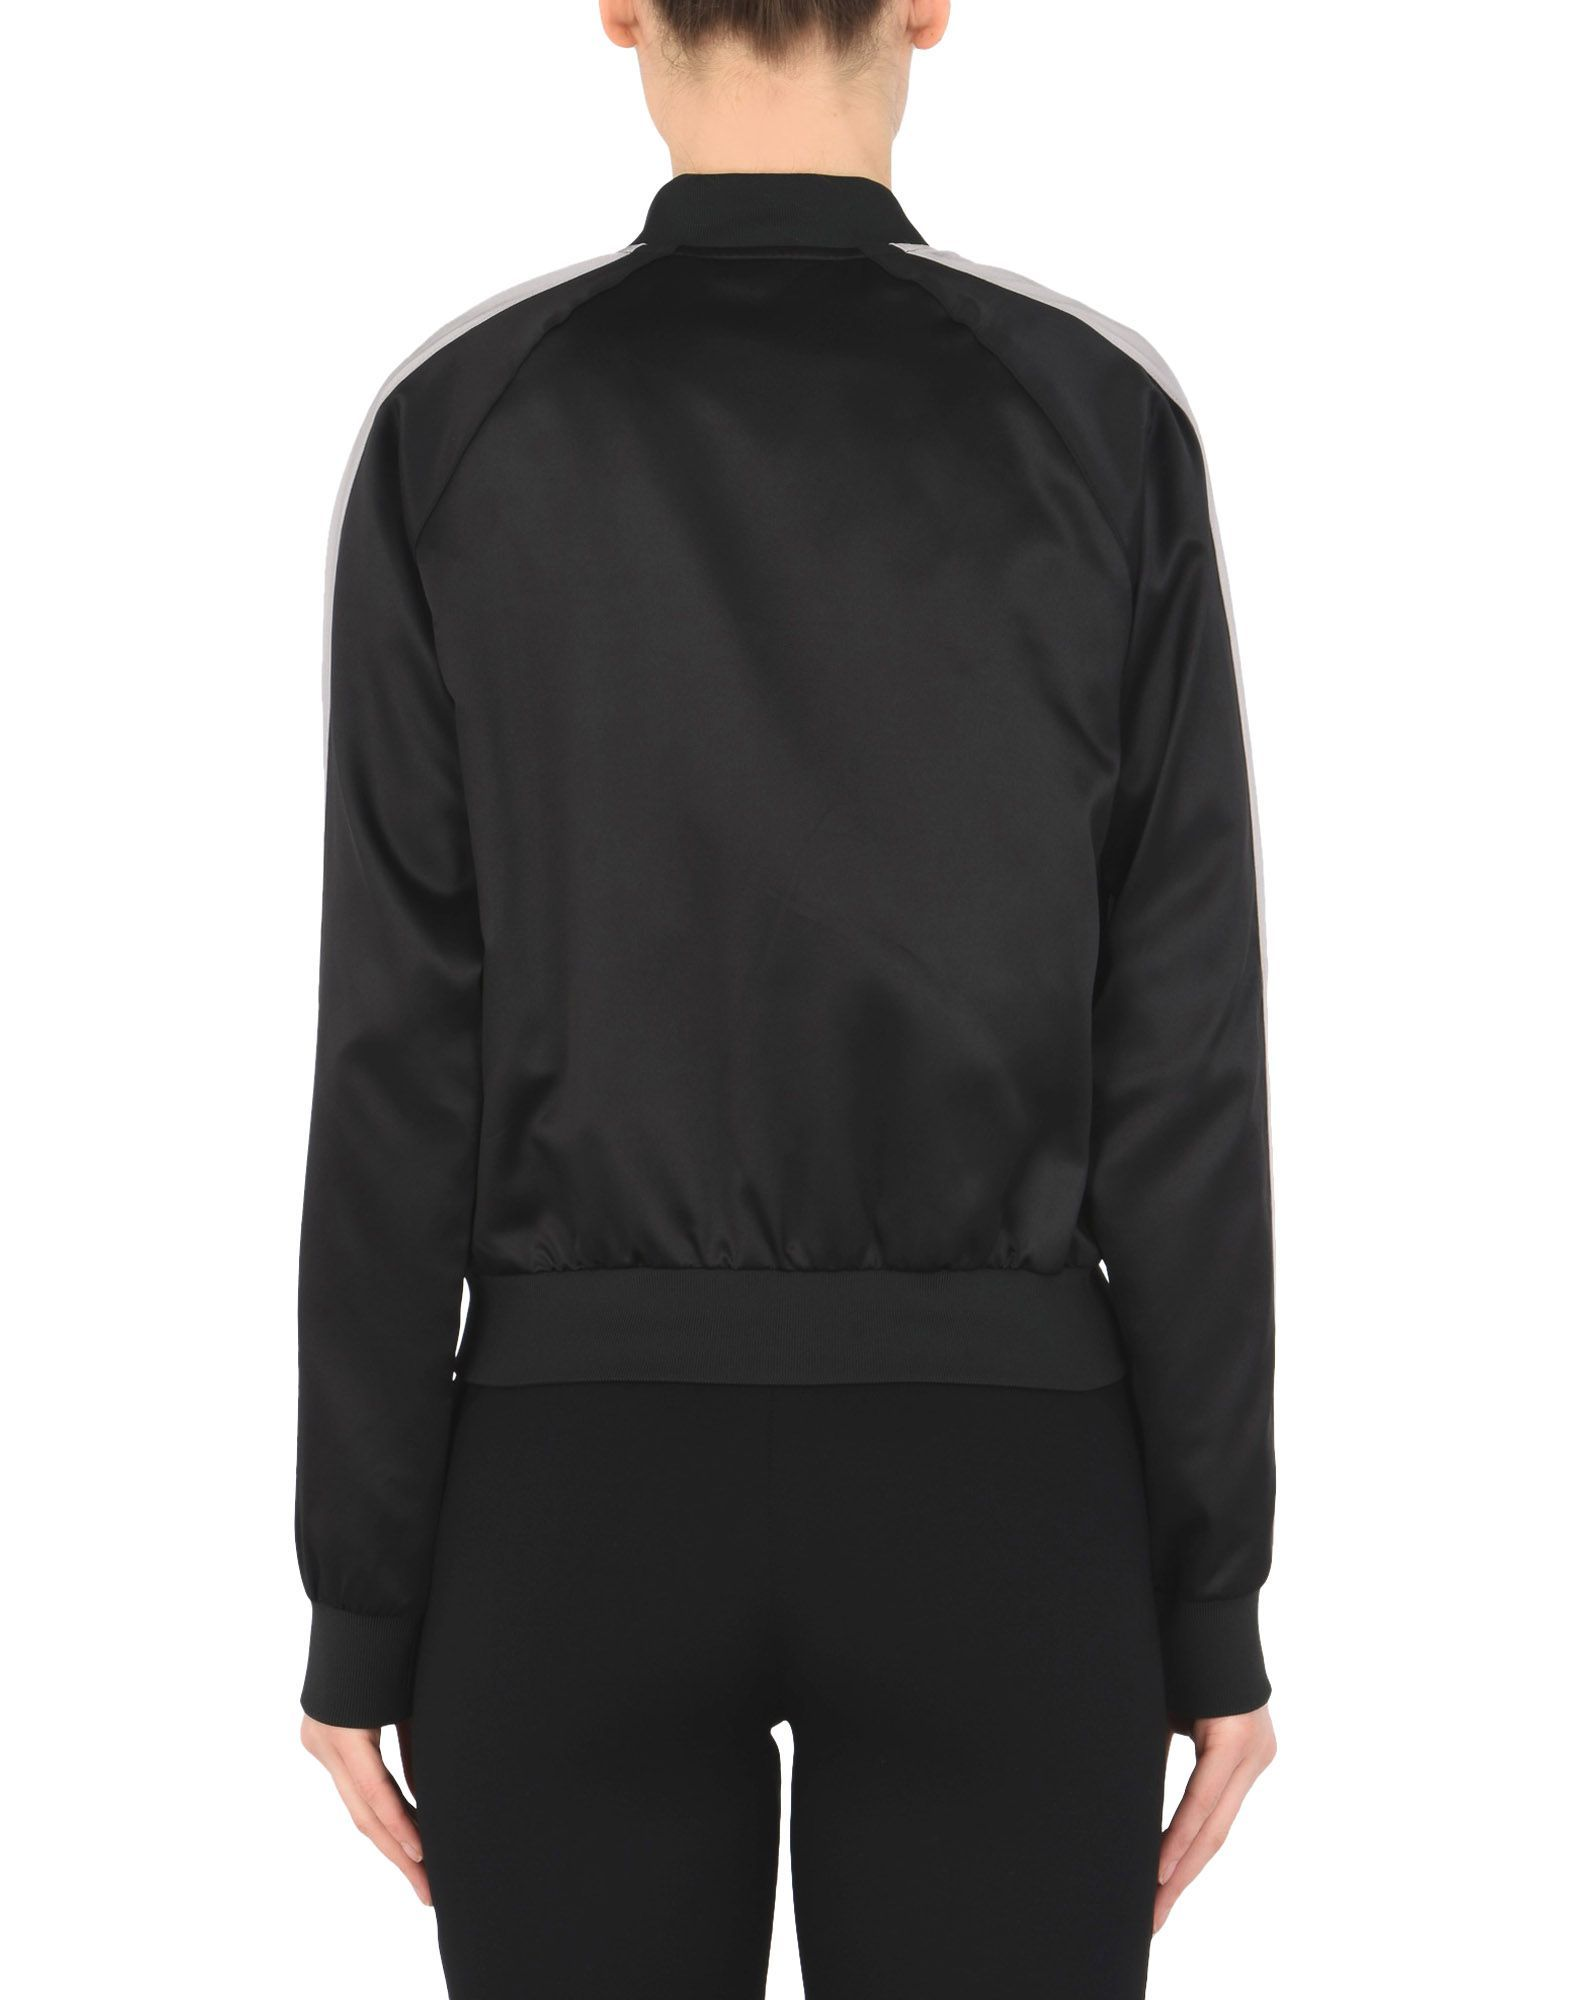 Puma Black Satin Bomber Jacket